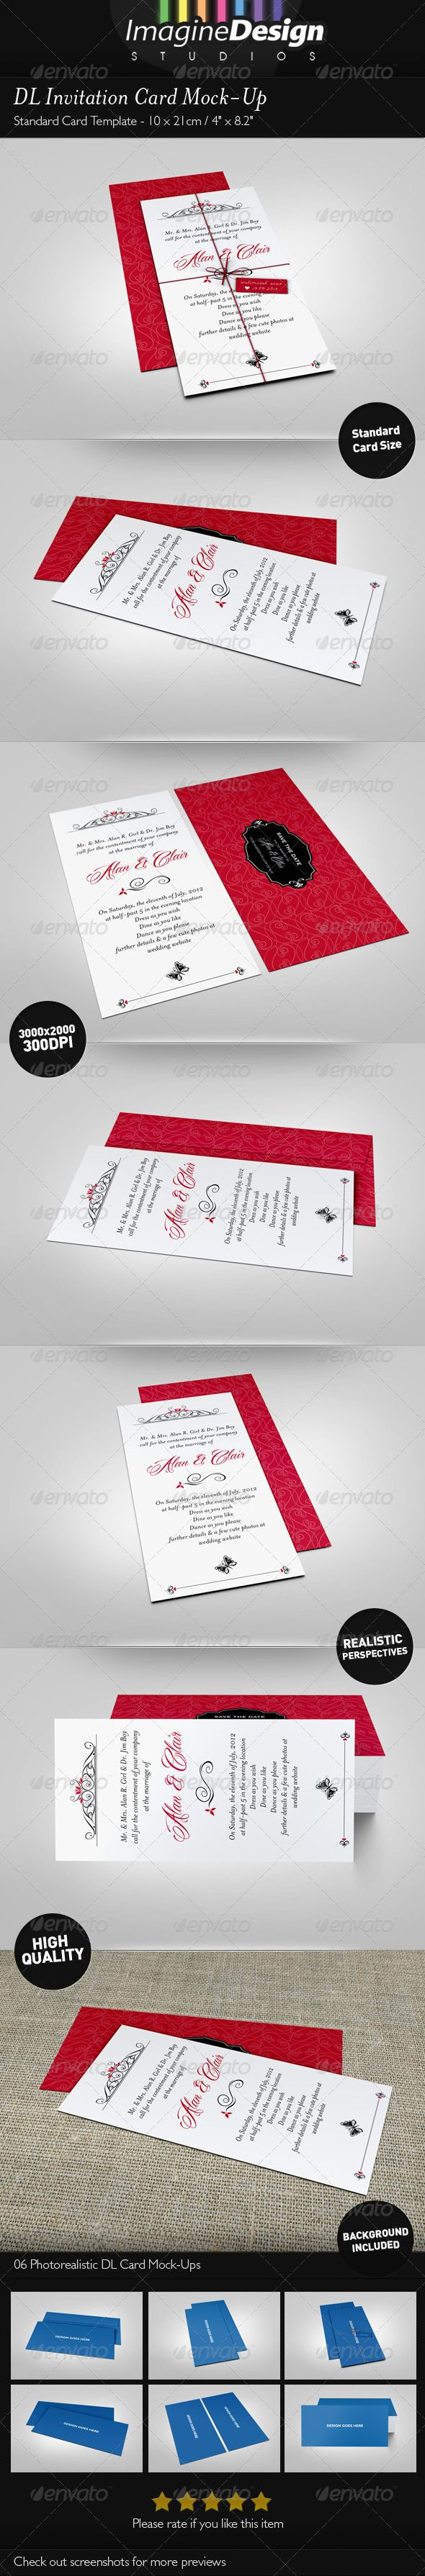 DL Invitation Card MockUp Mockup Template and Print layout